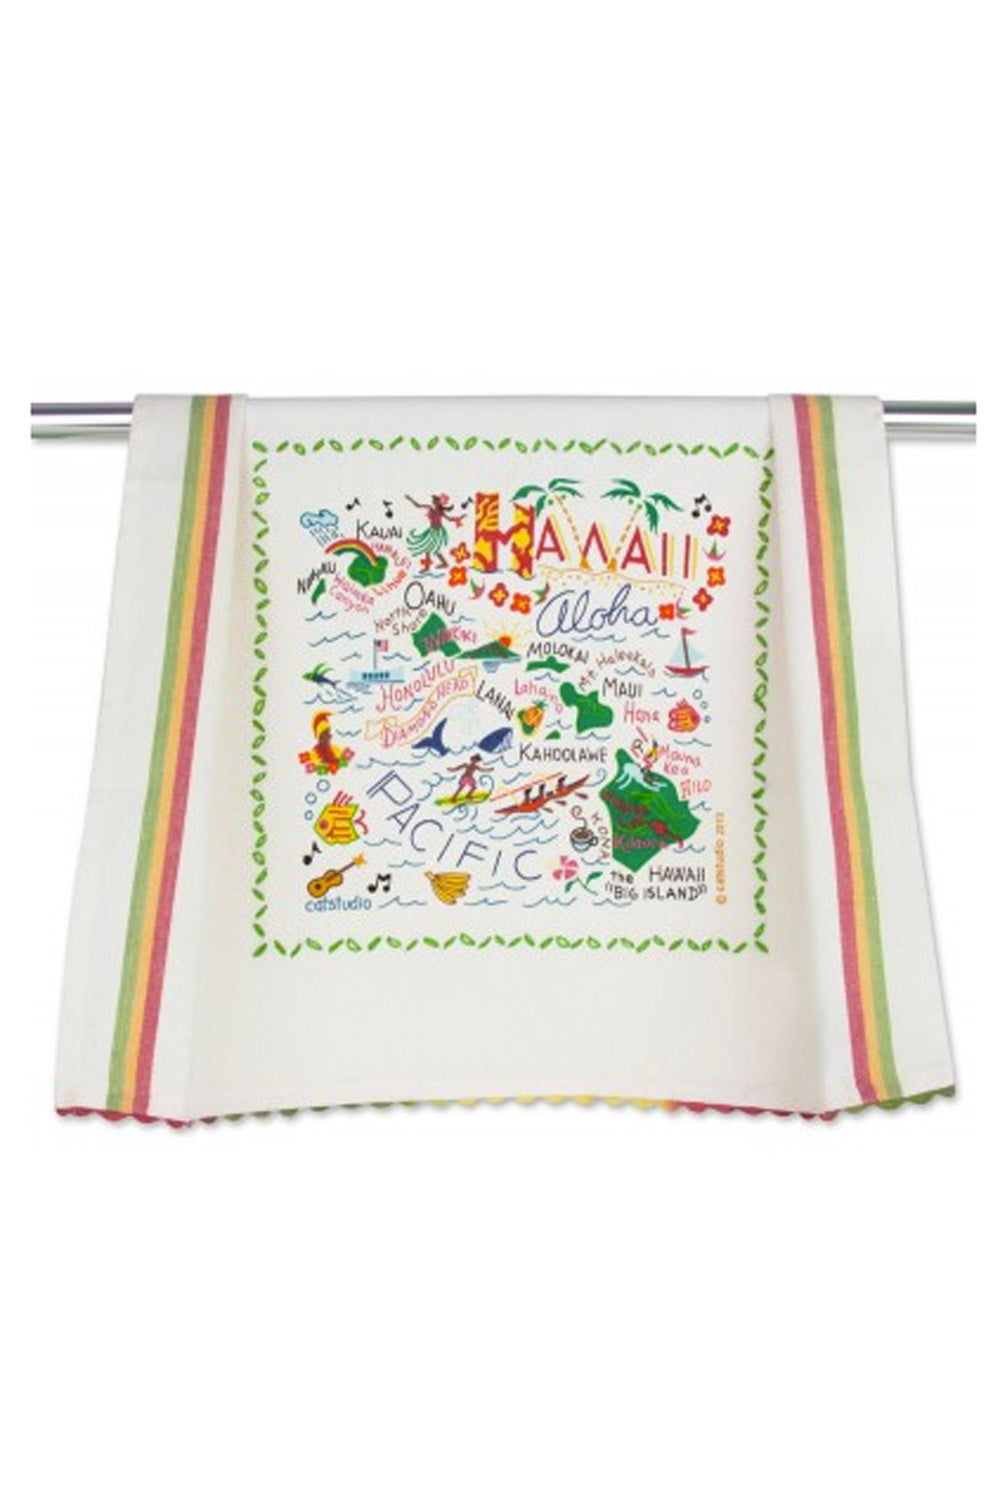 Embroidered Dish Towel  - Hawaii